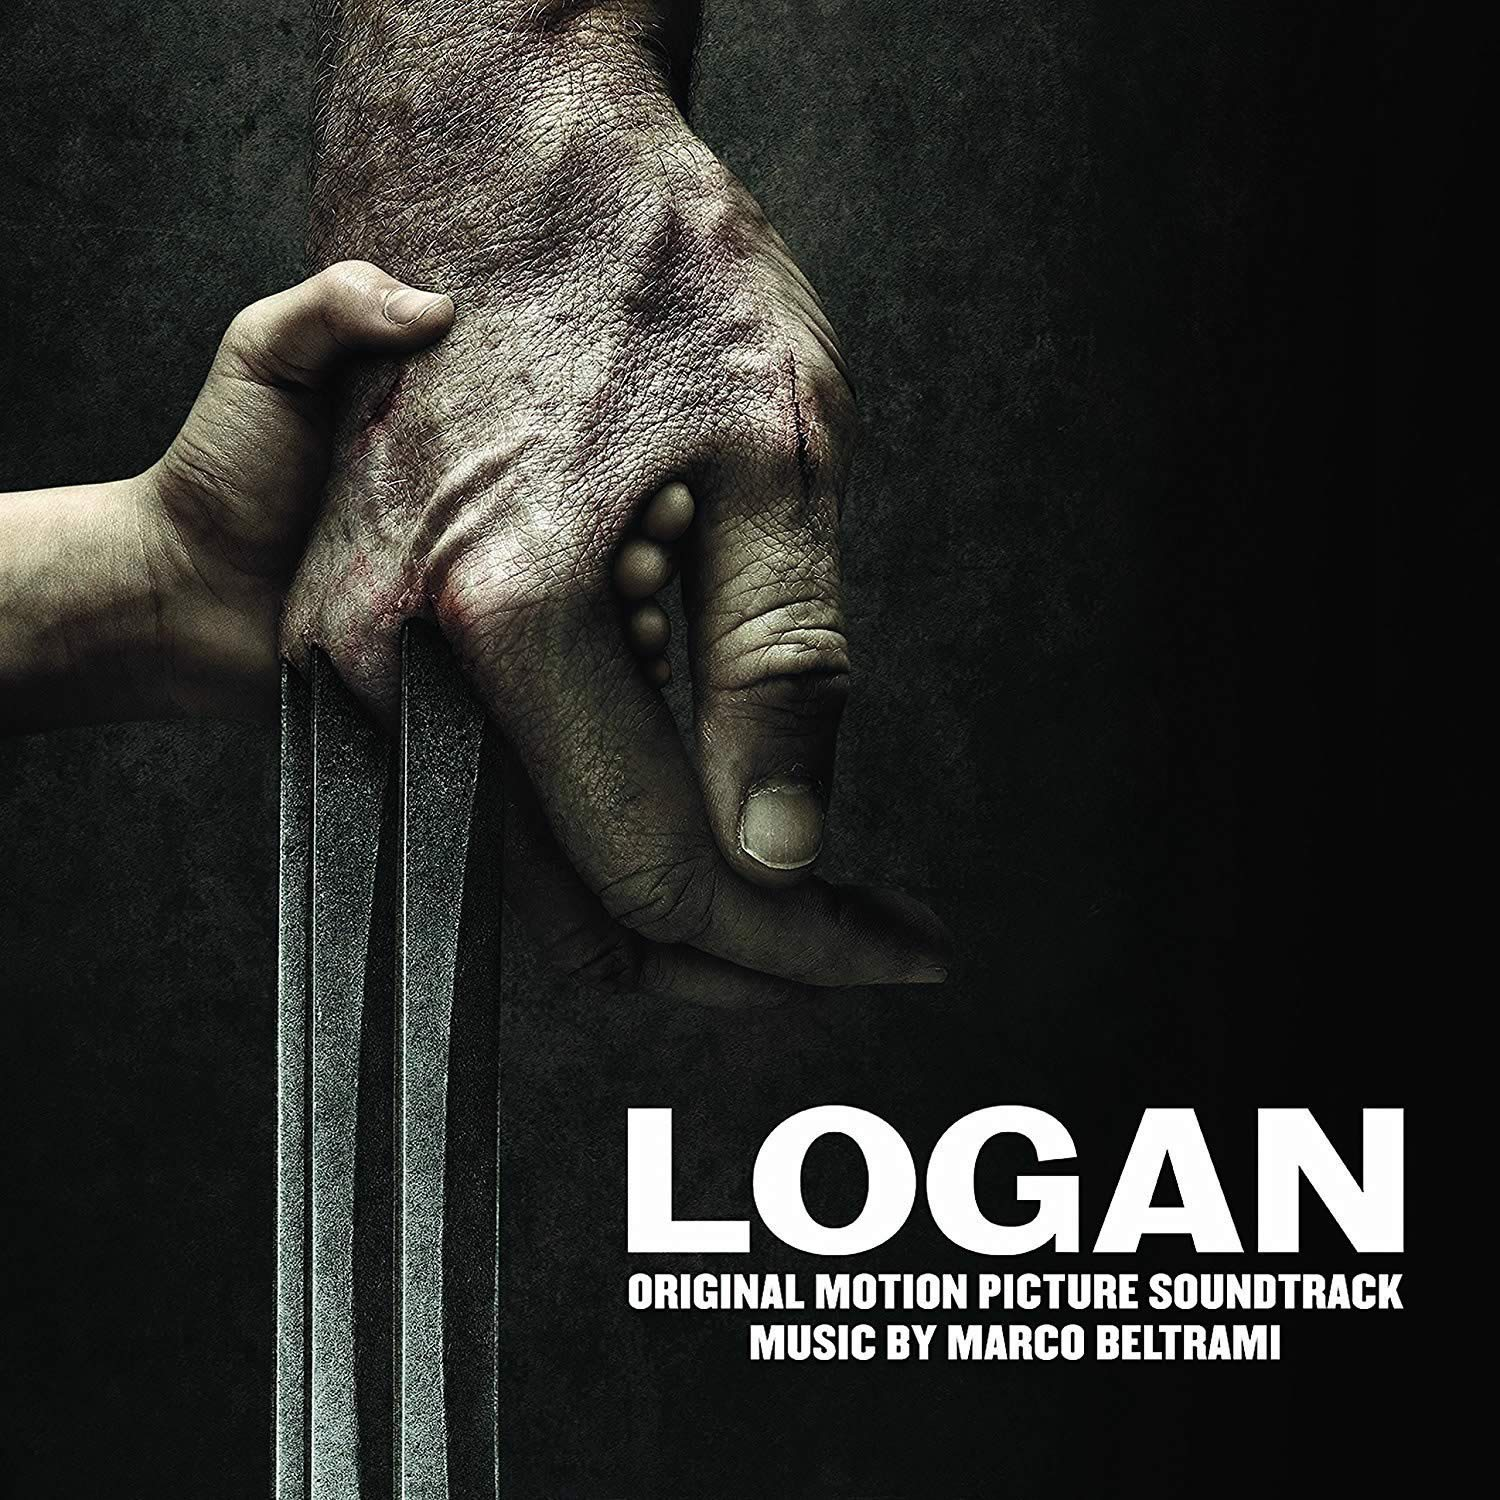 LOGAN - THE ORIGINAL MOTION PICTURE SOUNDTRACK (AUDIO CD)